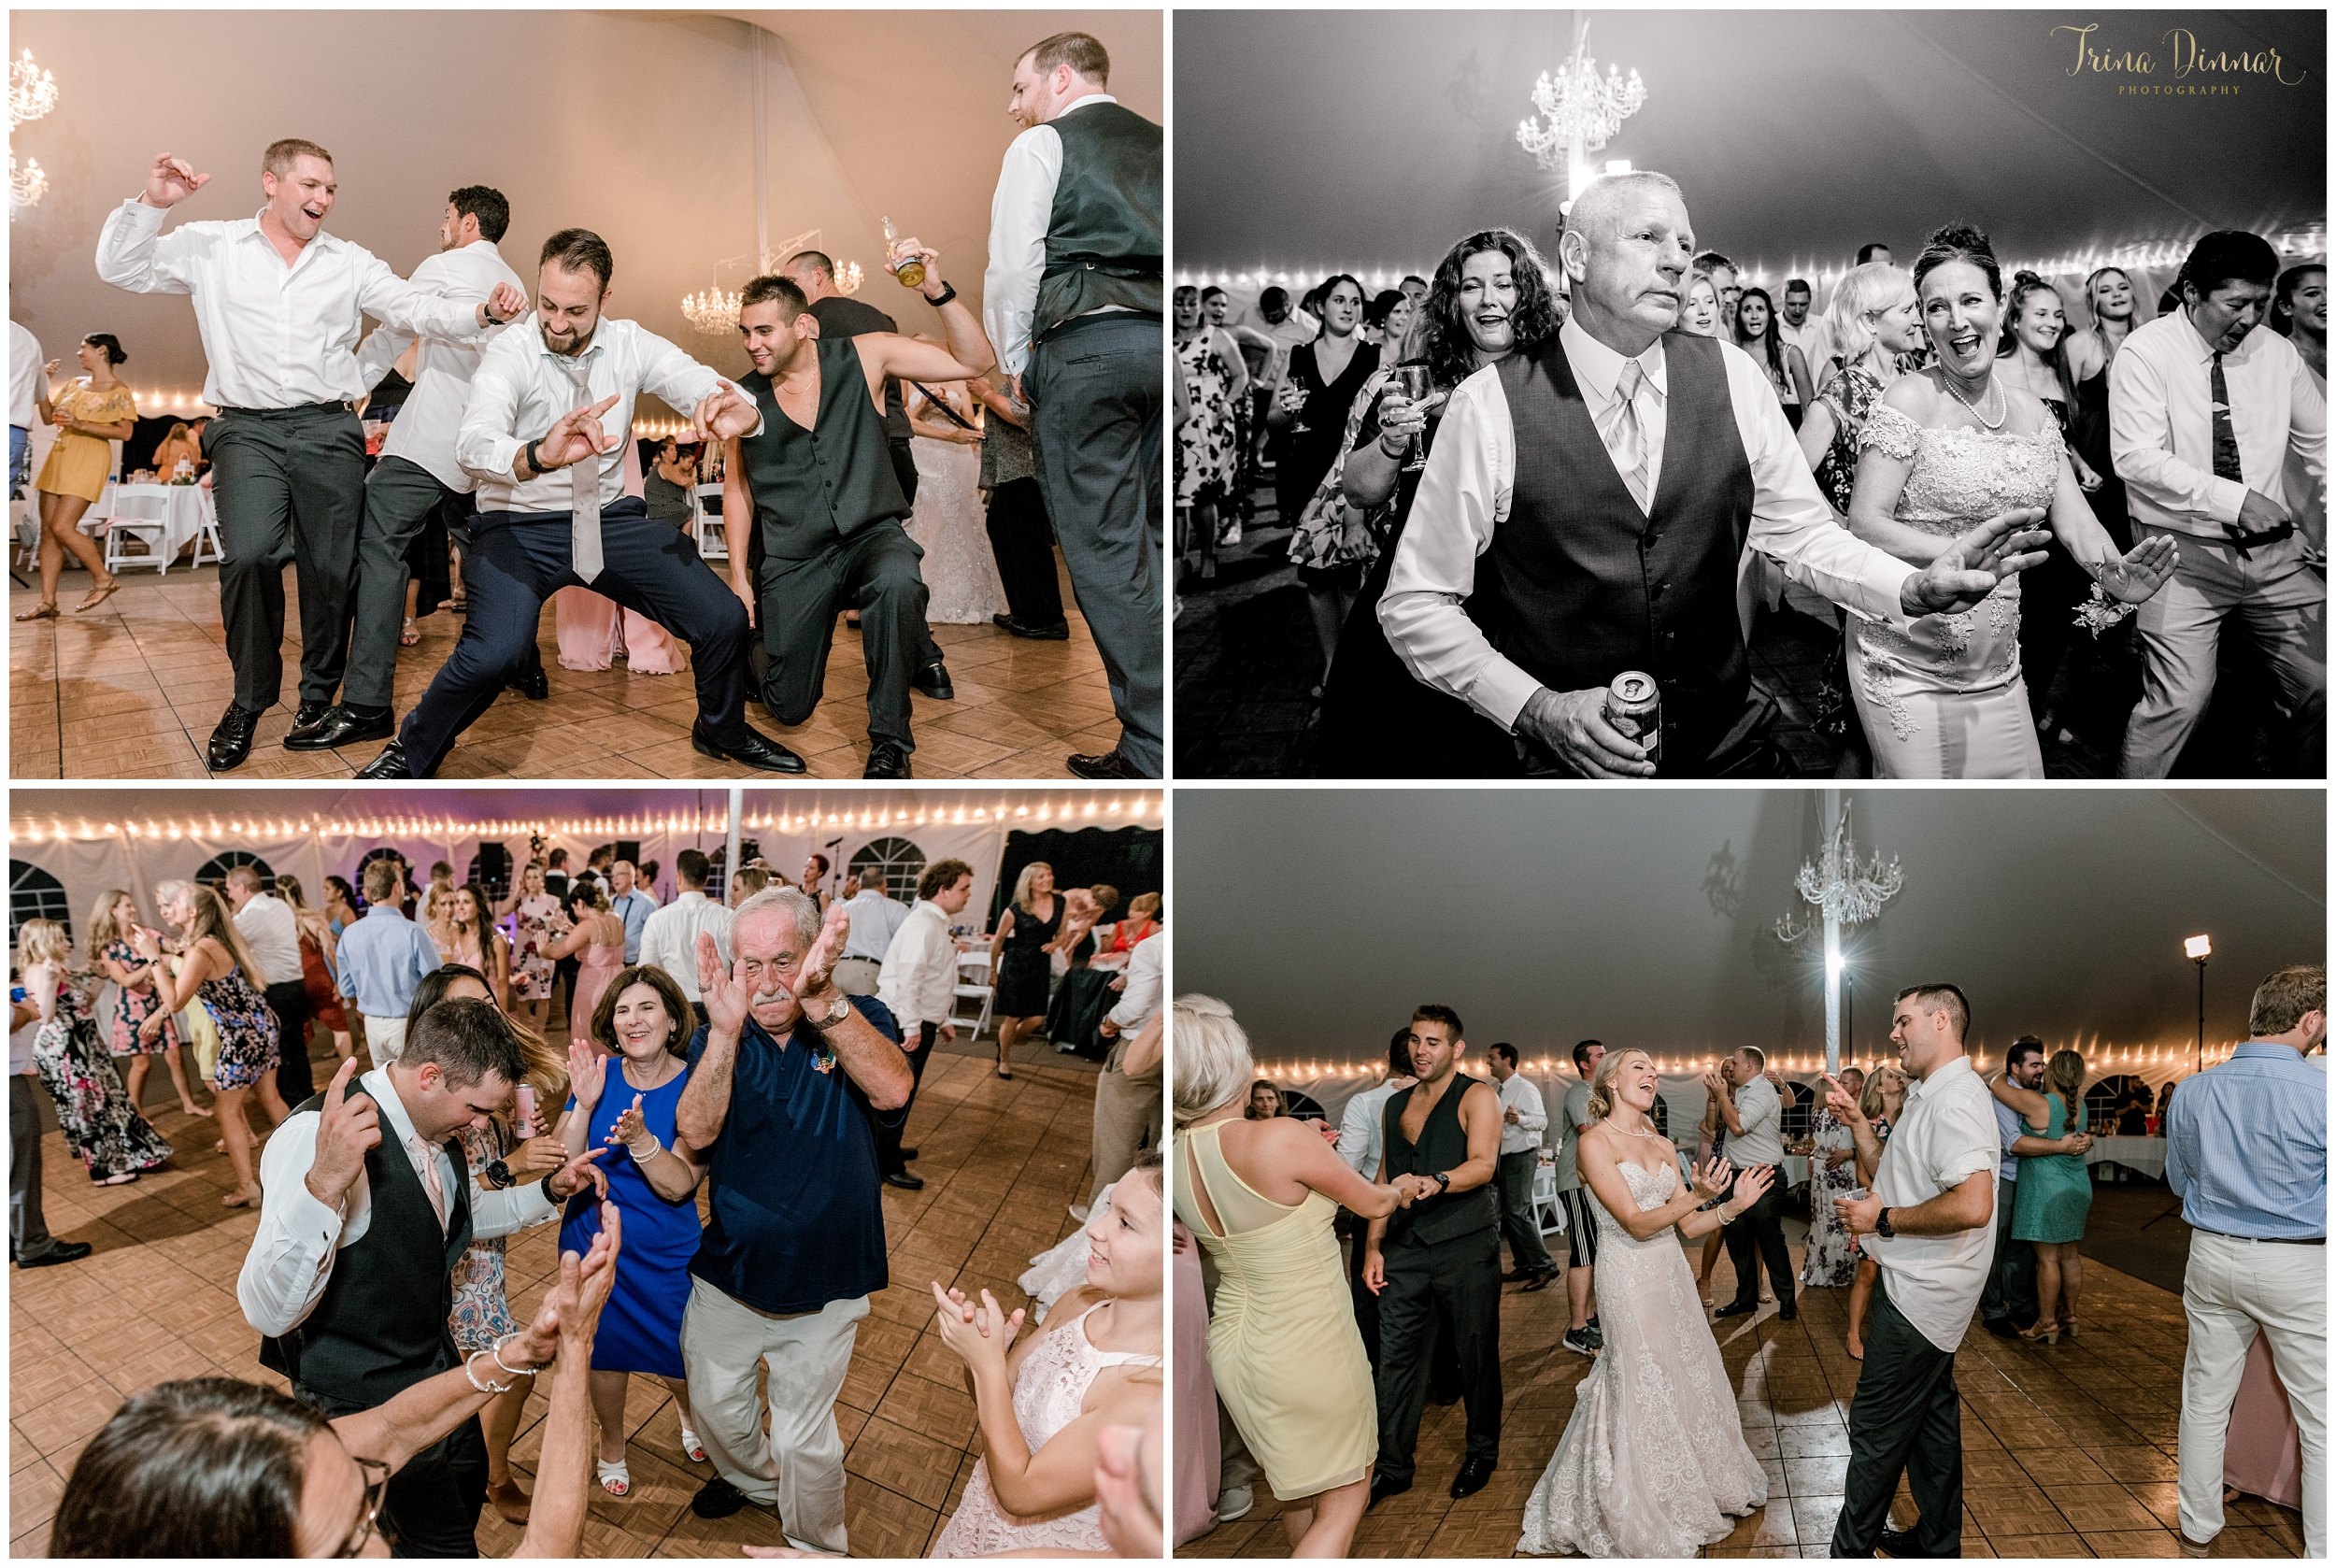 Wedding Reception Dance Floor Photos at Falmouth Country Club